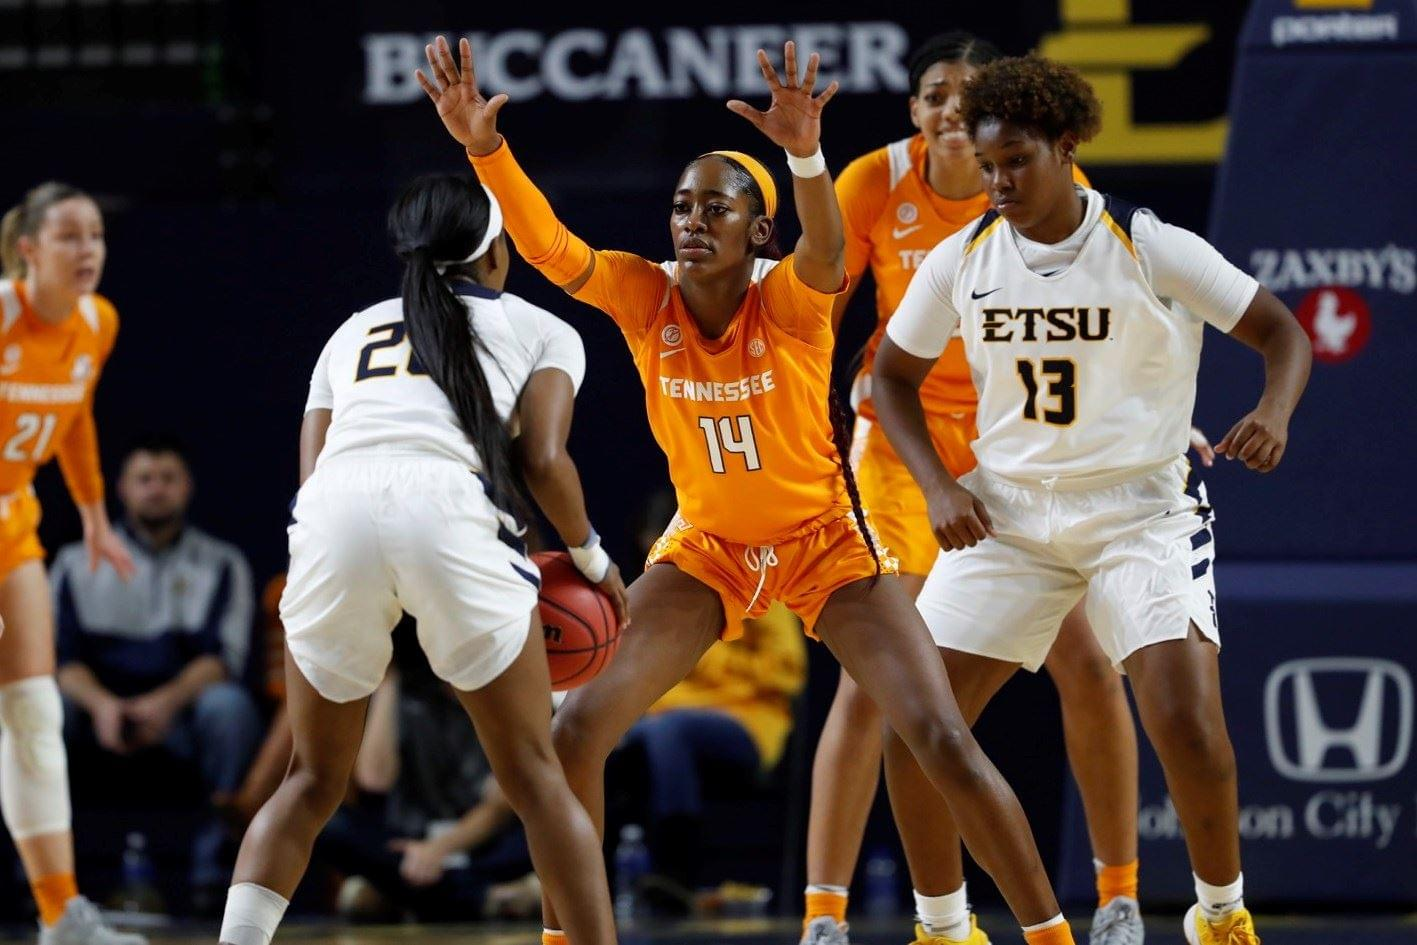 Lady Vols Open Harper Era With Win At ETSU, 72-68